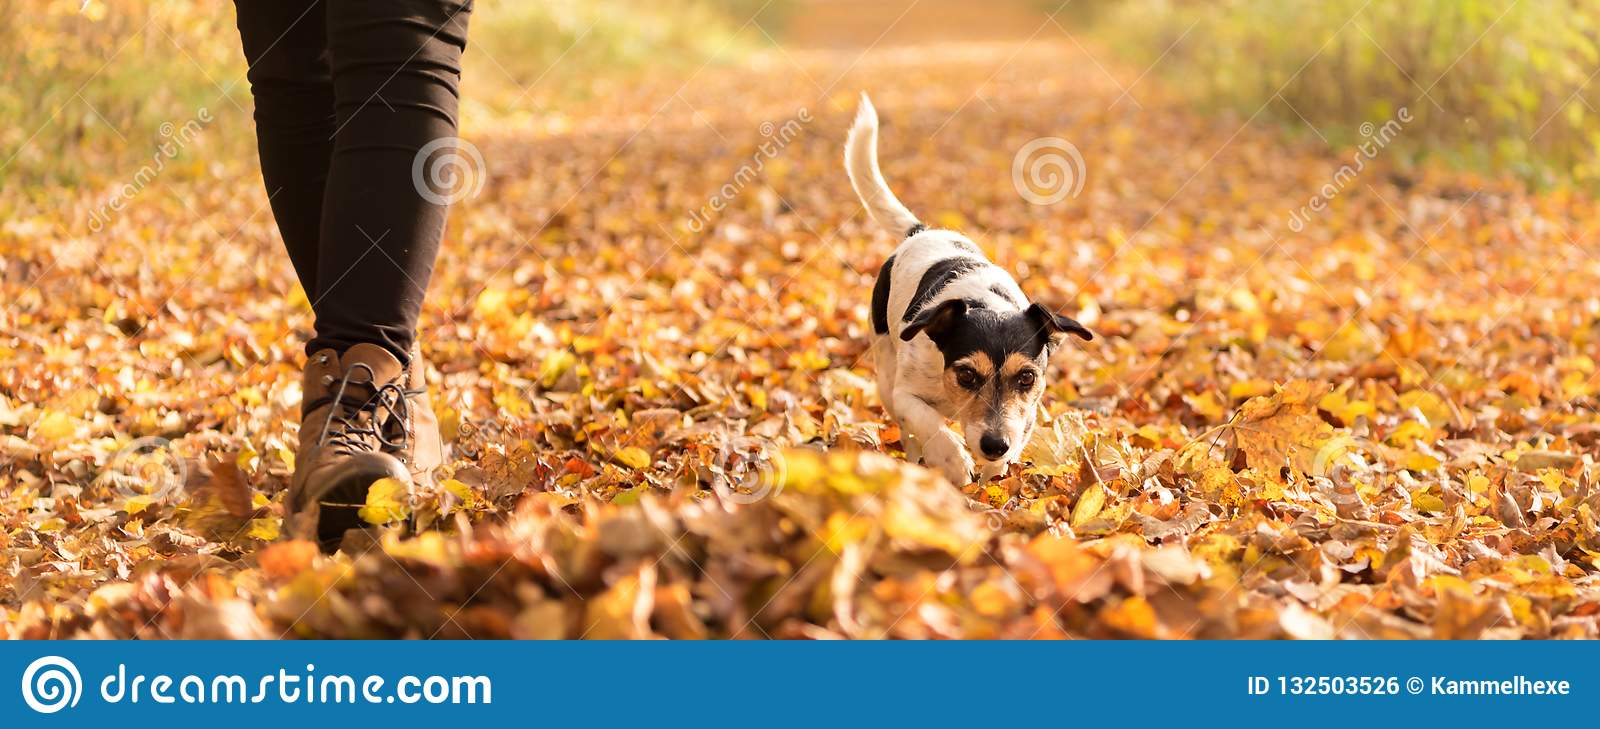 Owner an Jack Russell Terrier in autumn leaves